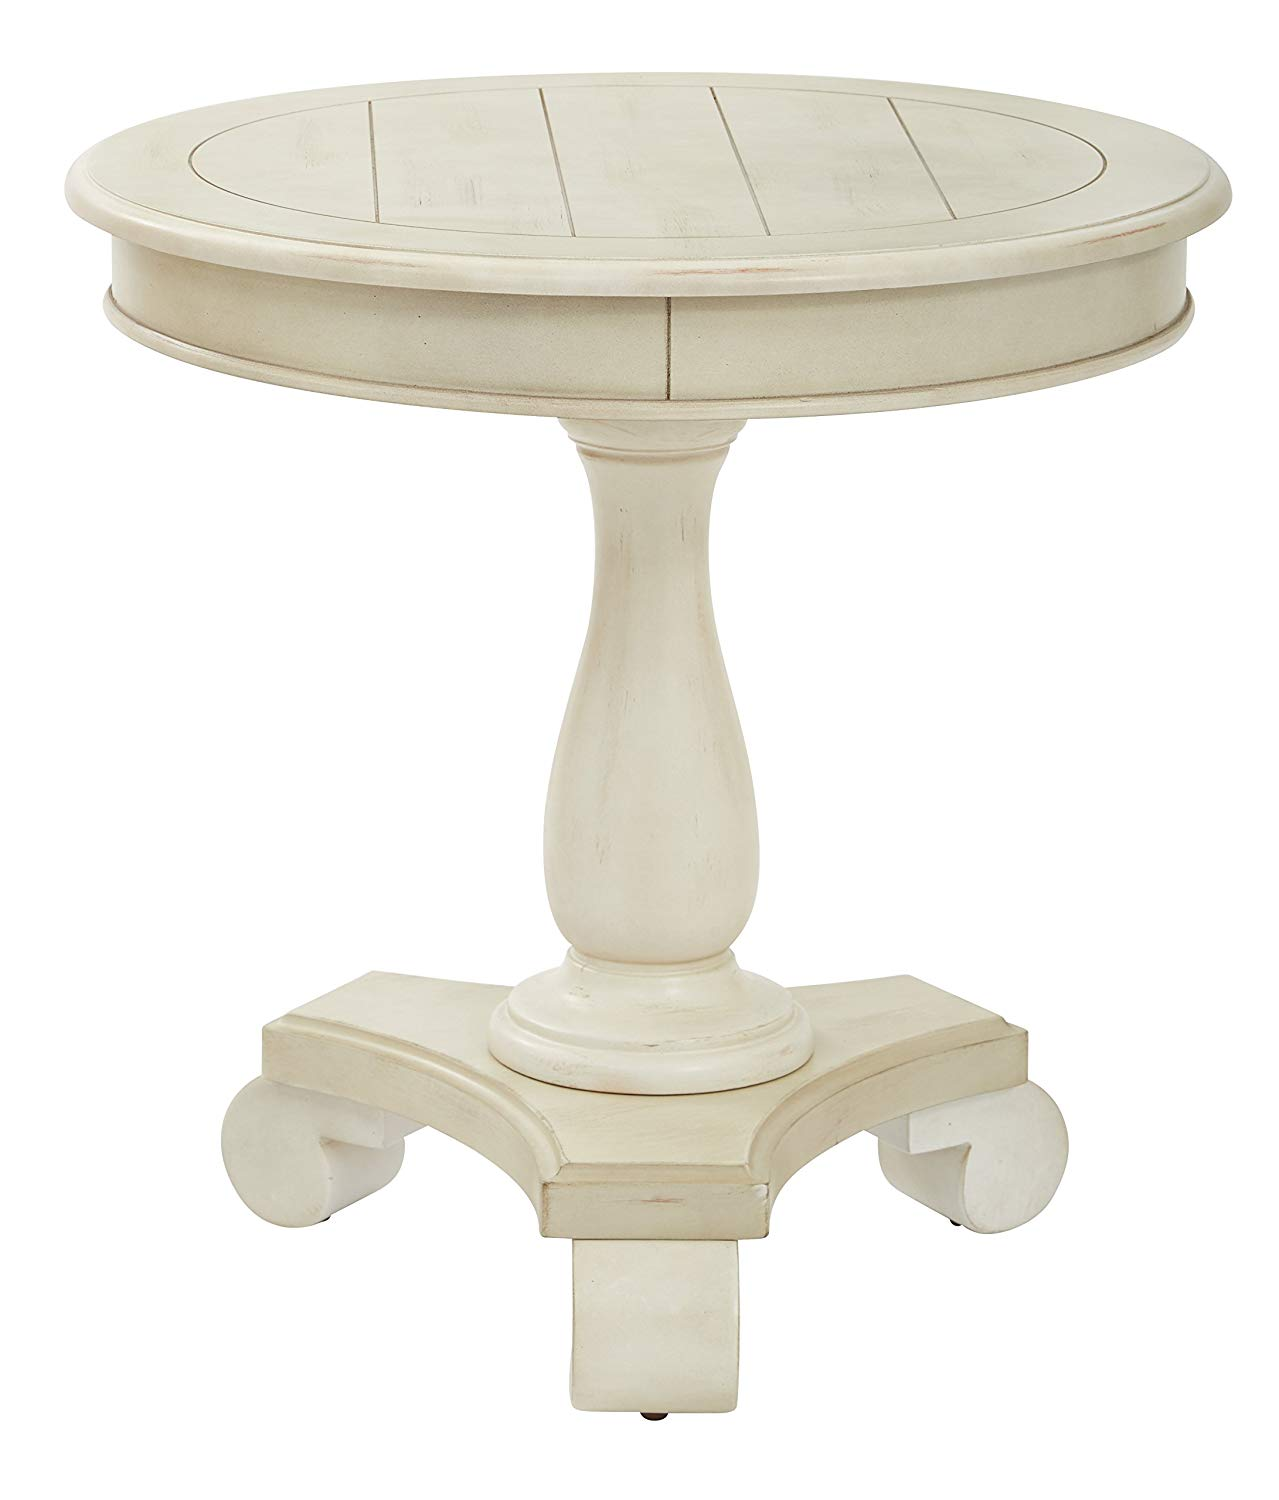 inspired bassett avlat osp avalon round mirimyn accent table antique beige kitchen dining small side pallet sofa target chairs toolbox chest cabinets metal nic tables restoration